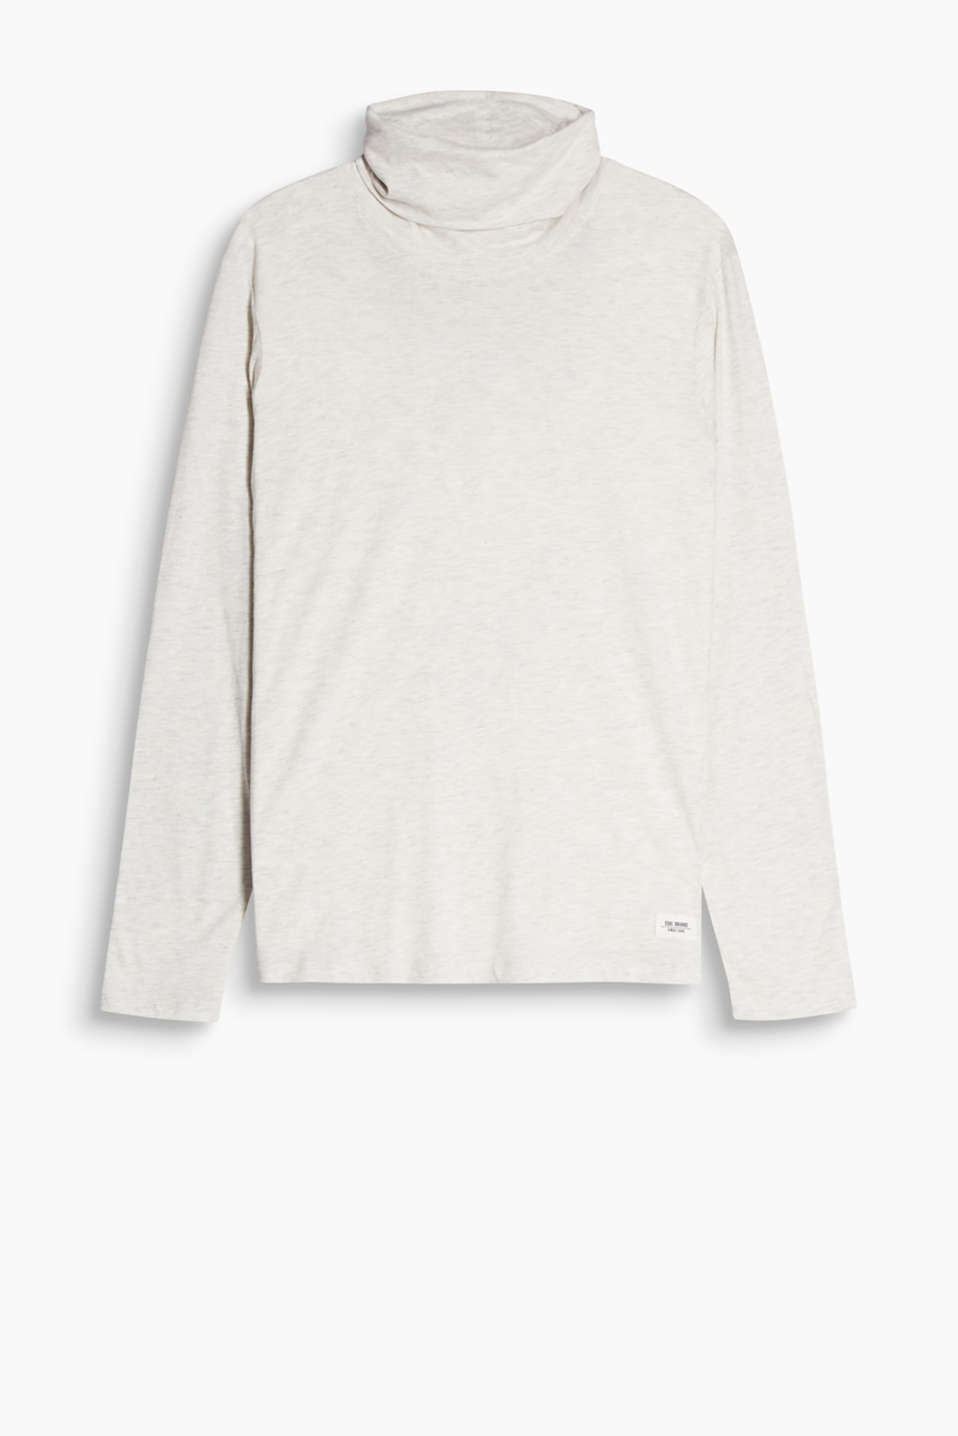 Your autumn essential: melange jersey long sleeve top in a loose fit with a polo neck, organic cotton blend